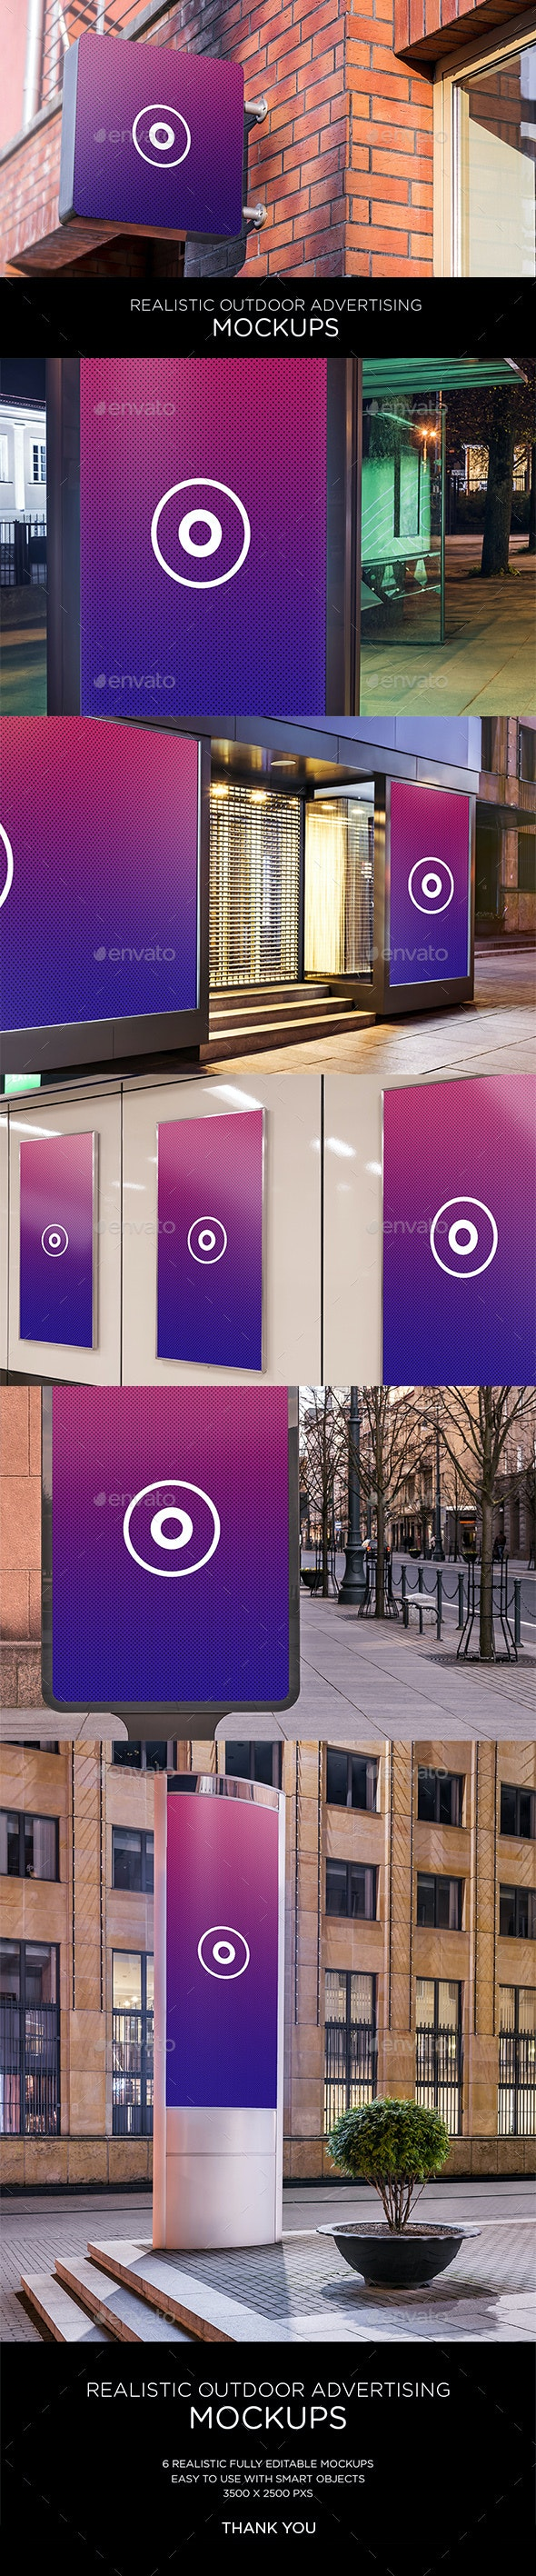 HQ Realistic Outdoor Advertising Mockup - Graphics